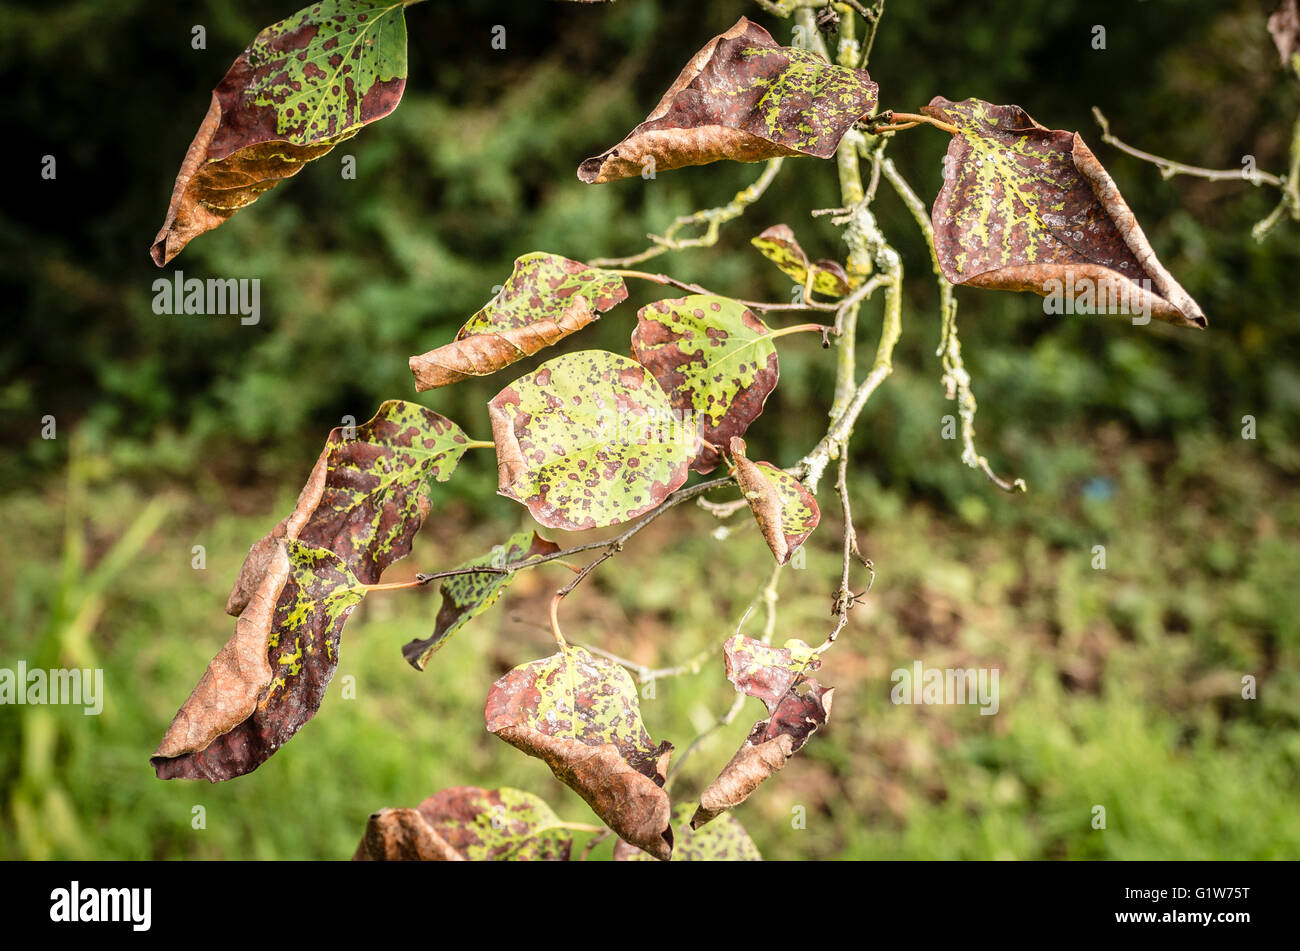 Signs of distress on leaves of Cydonia oblonga leading to reduced fruiting - Stock Image